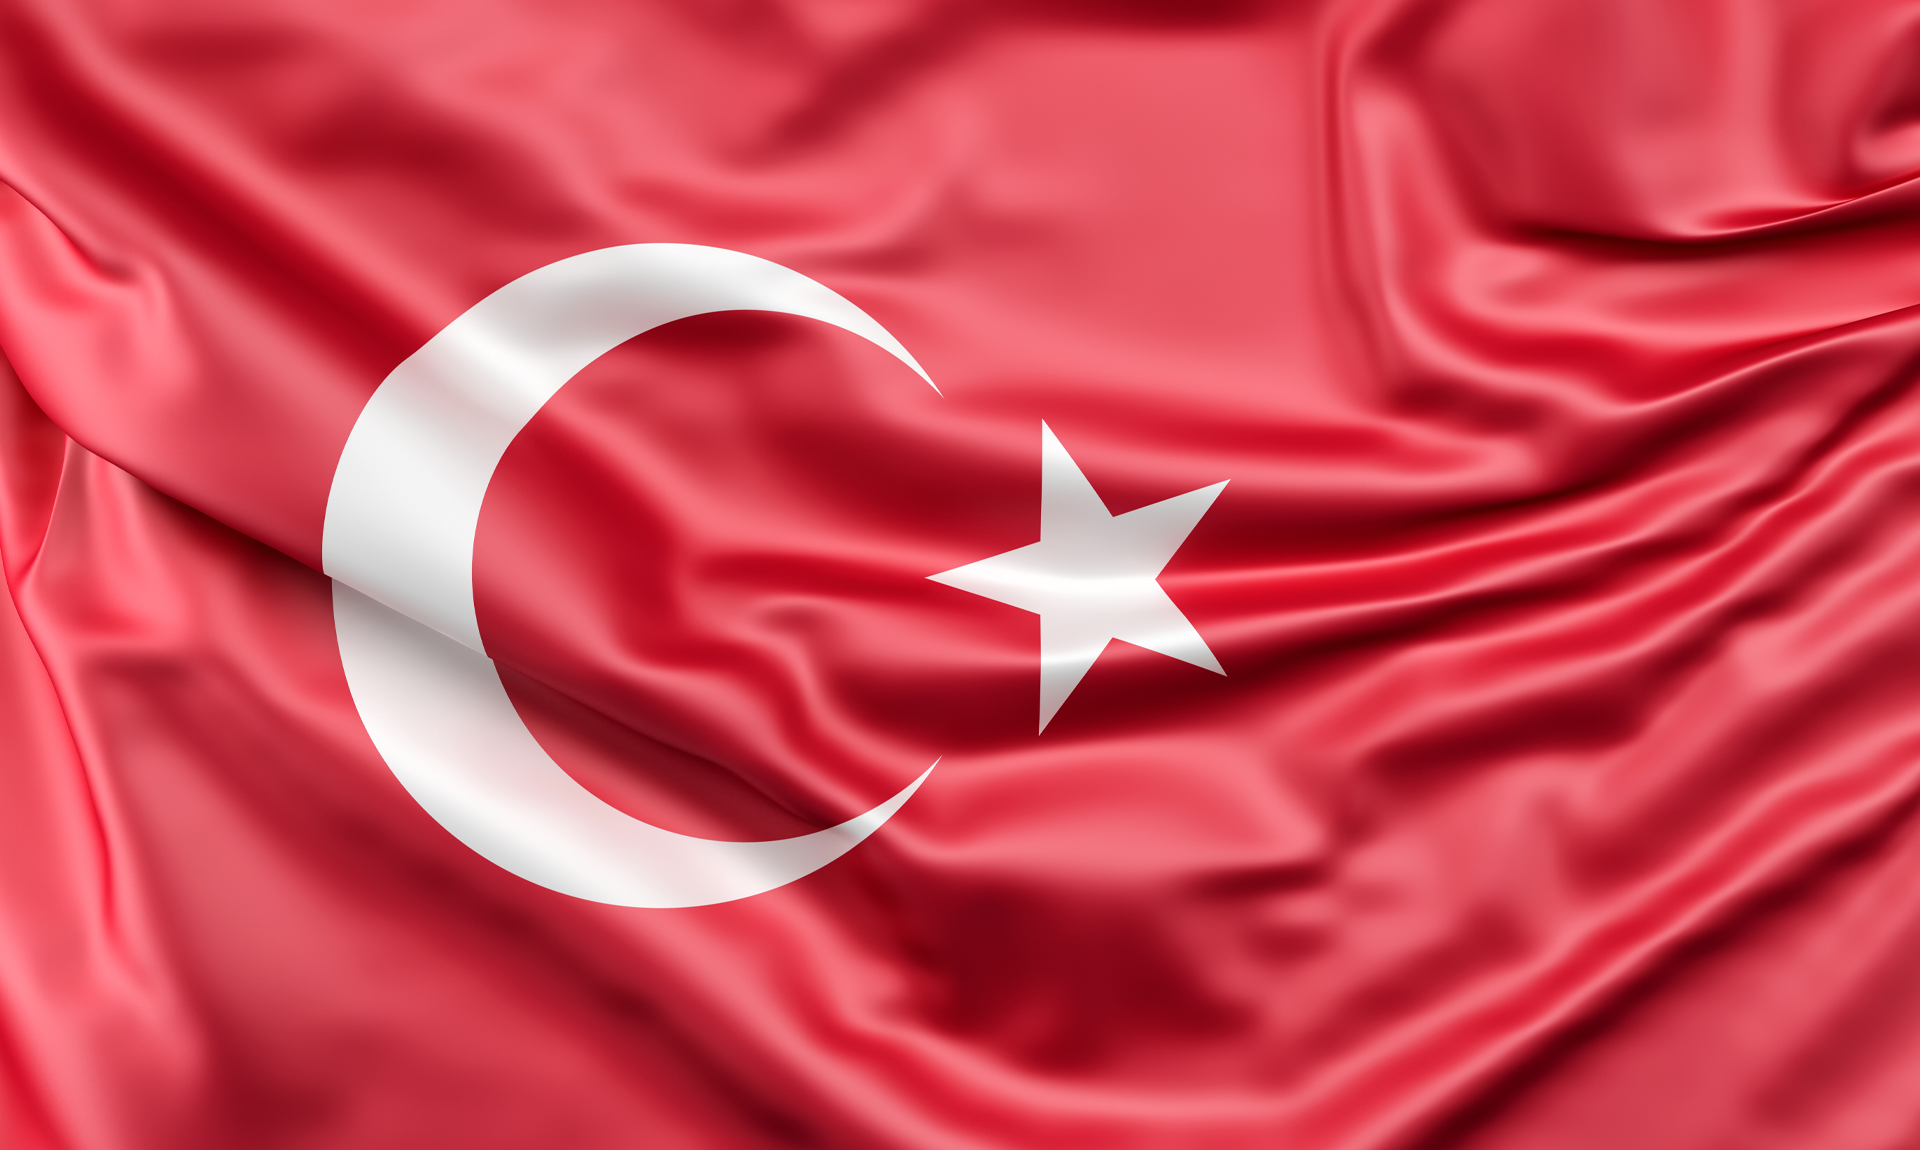 Le occasioni di business in Turchia: immagine con bandiera del Paese/Business opportunities in Turkey: image with the country flag